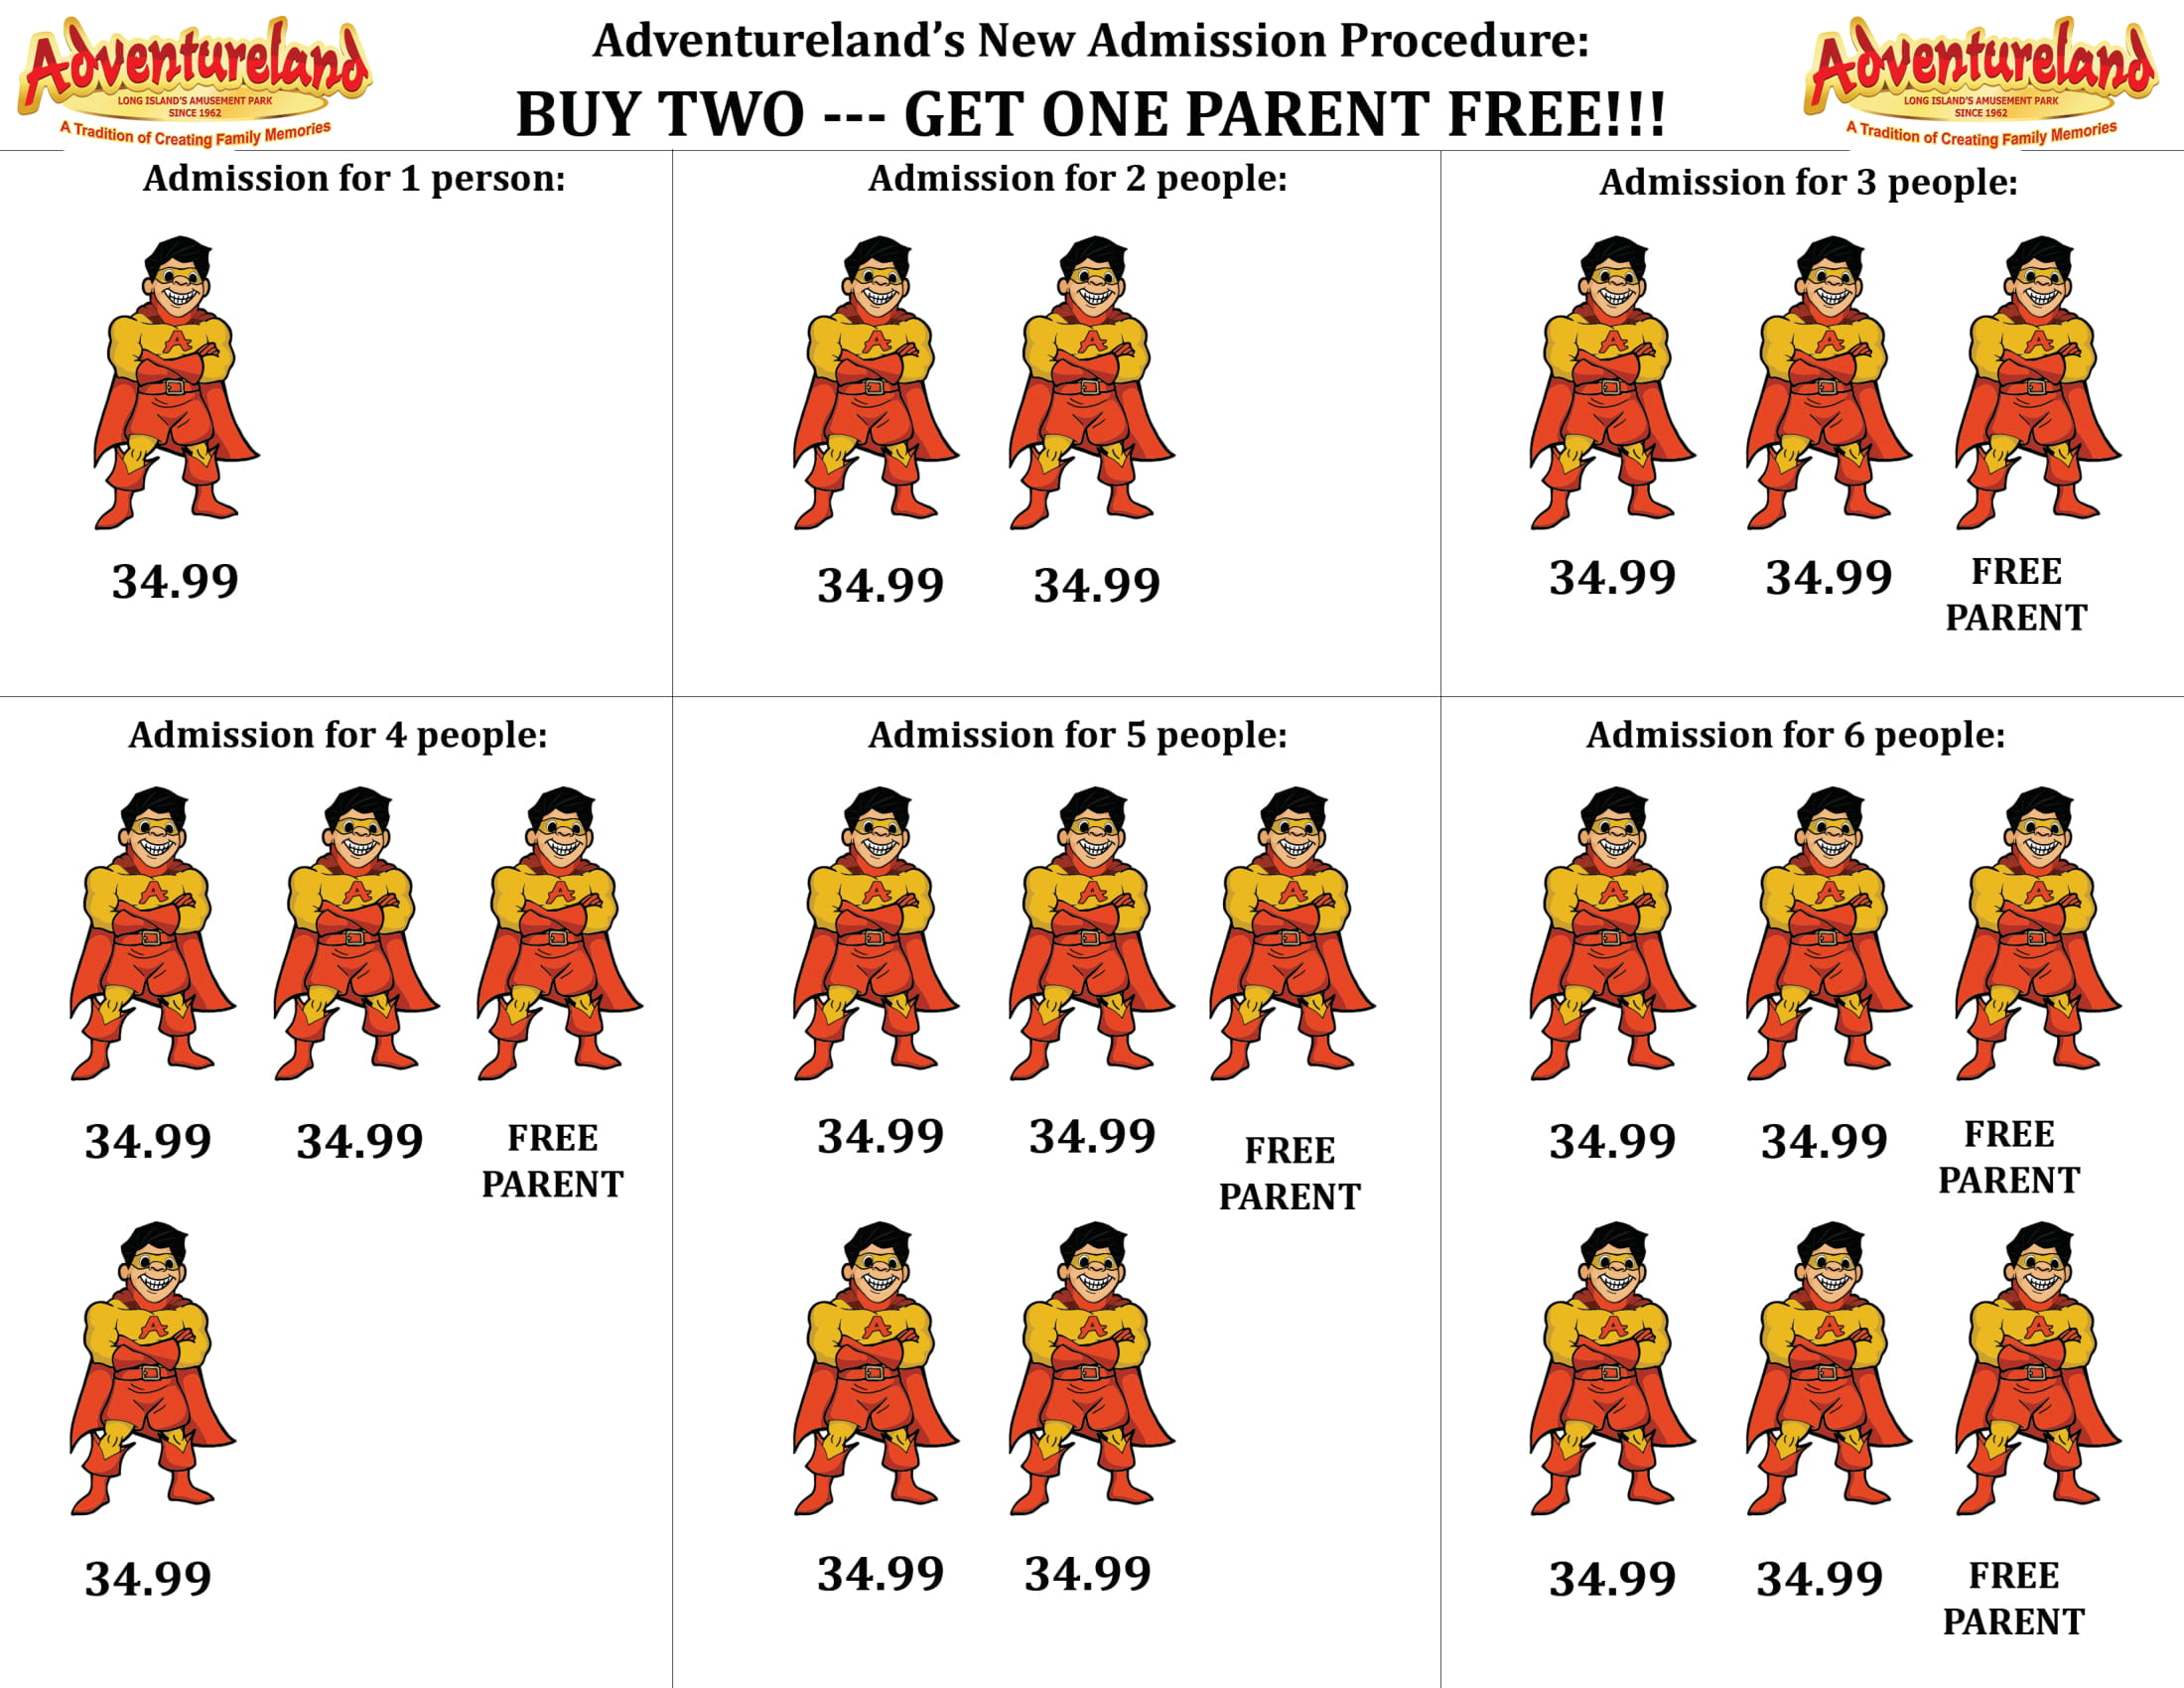 Adventureland's New Admission Procedure - Buy two get one parent free!!!